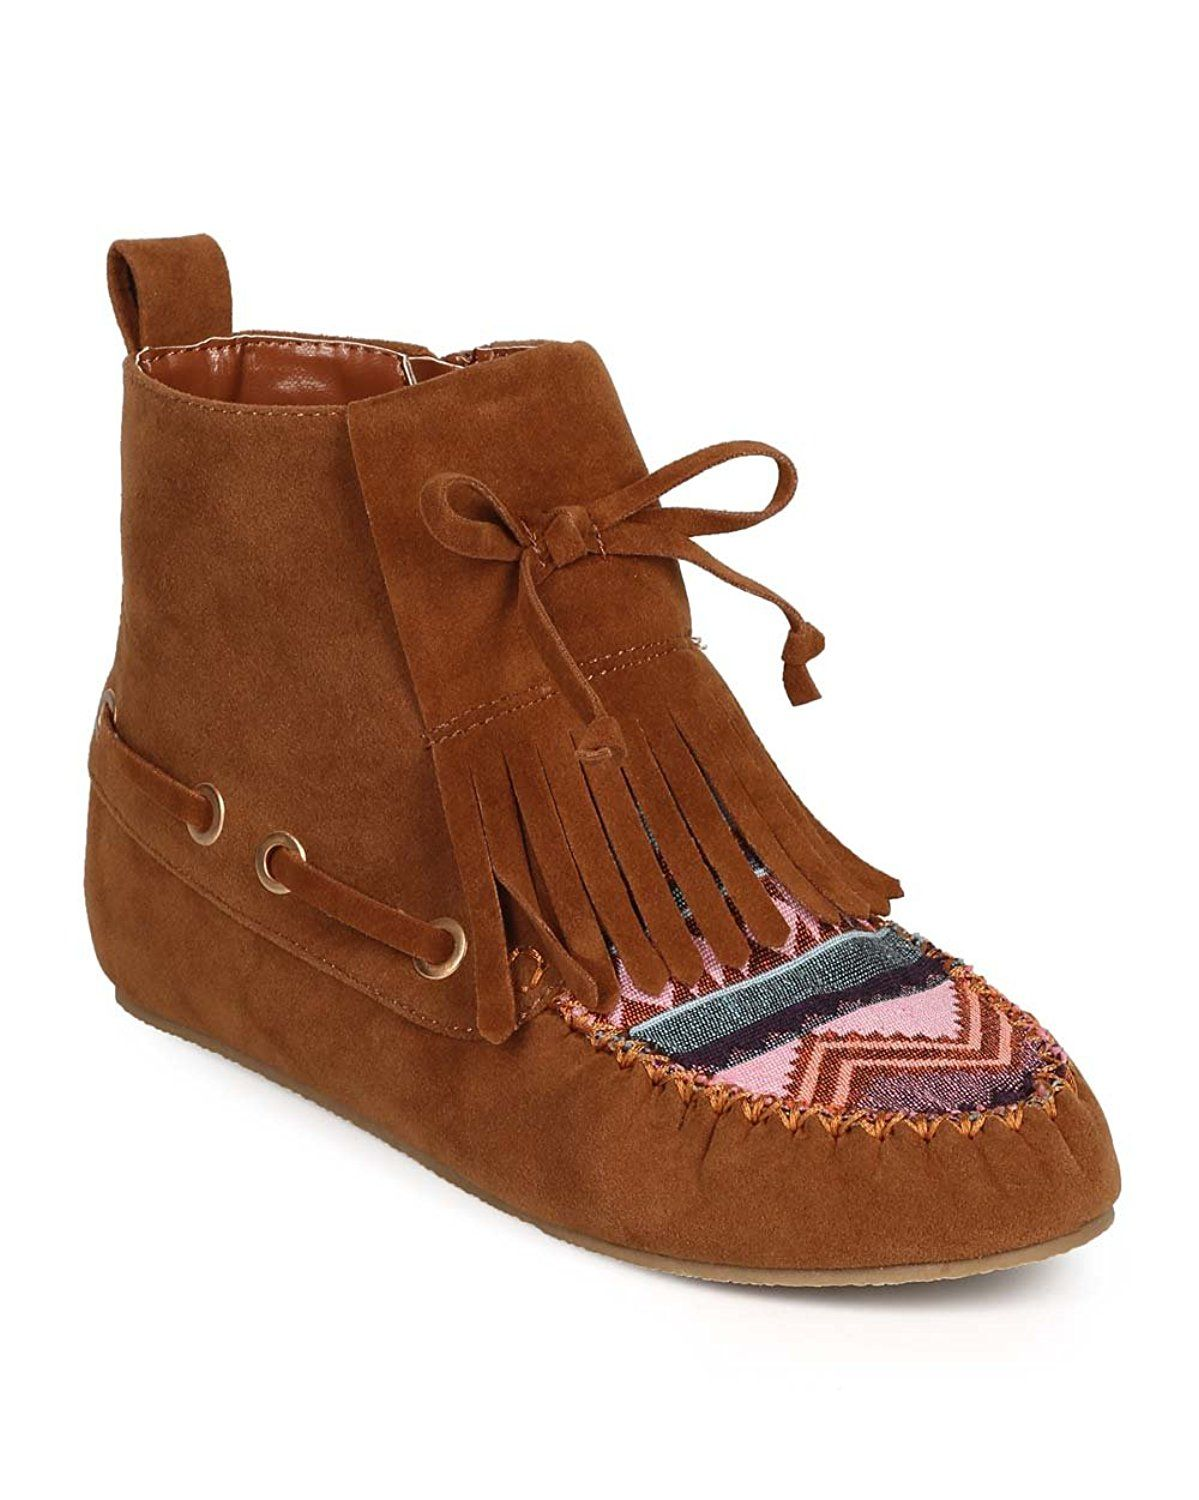 fda27ea98767 Nature Breeze DH56 Women Suede Tribal Tapestry Moc Toe Fringe Bow Moccasin  Bootie - Tan